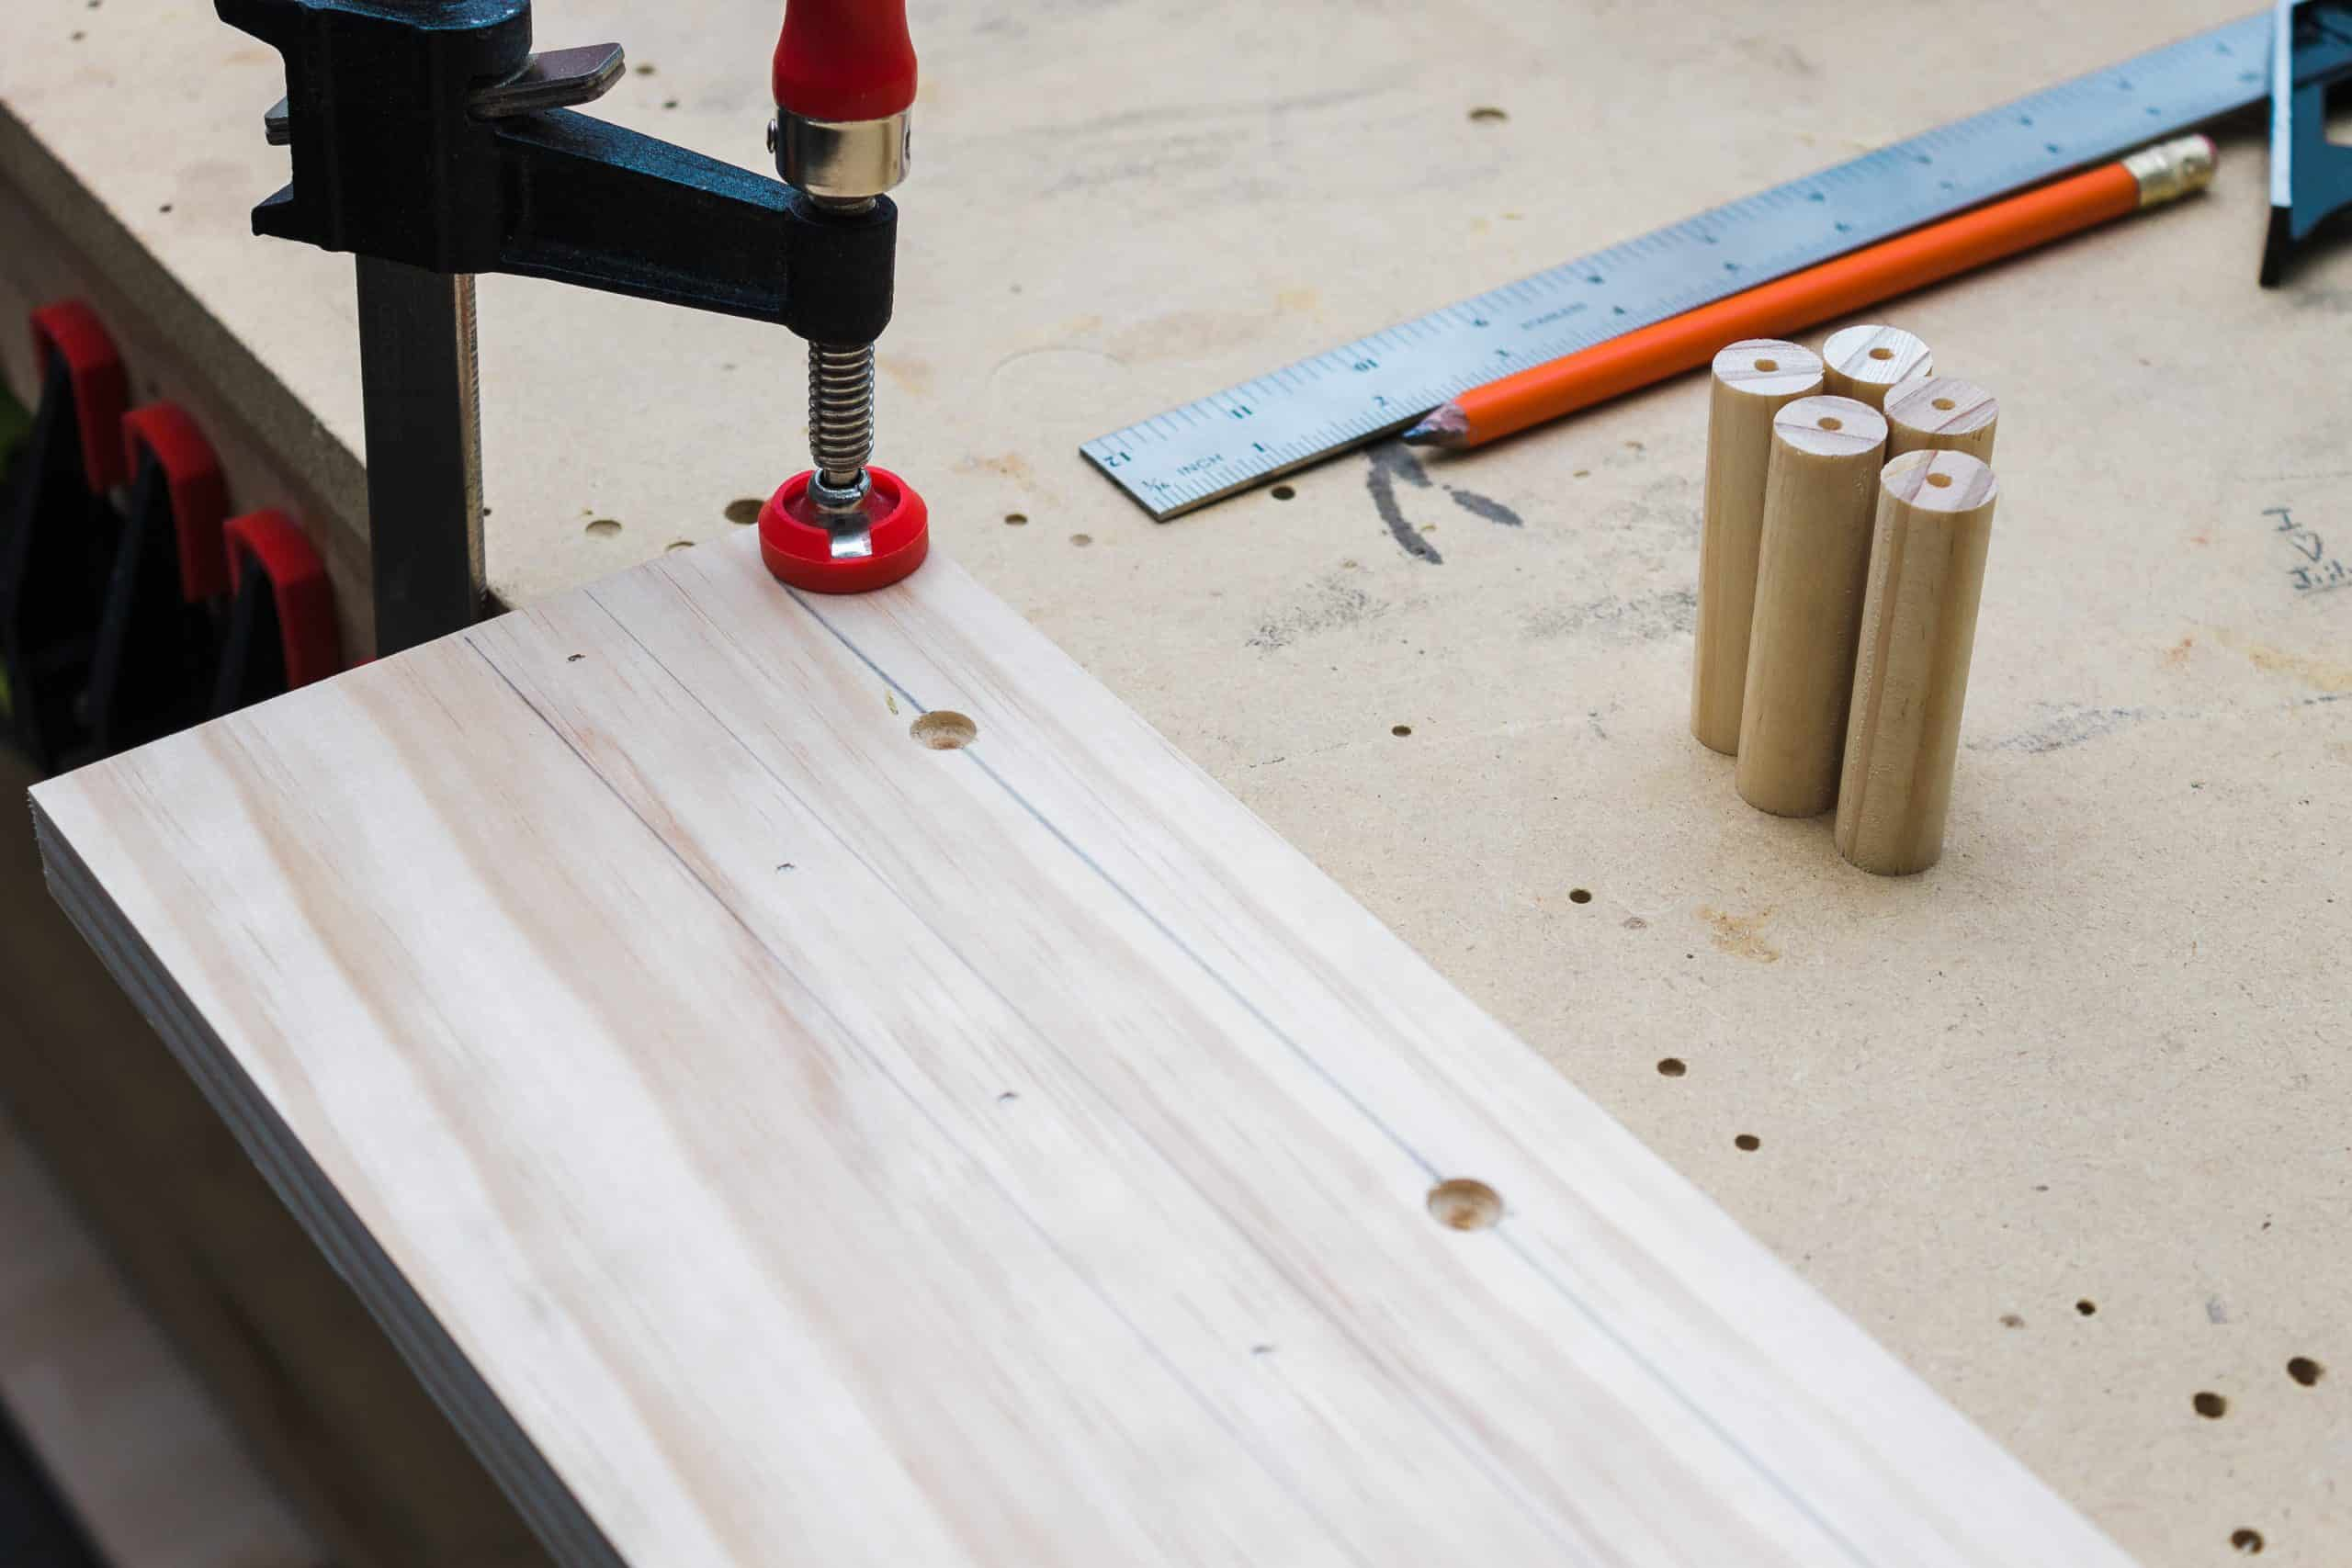 For an easier assembly, pre-drill center holes in each of the dowels for the DIY wooden peg rail shelf.